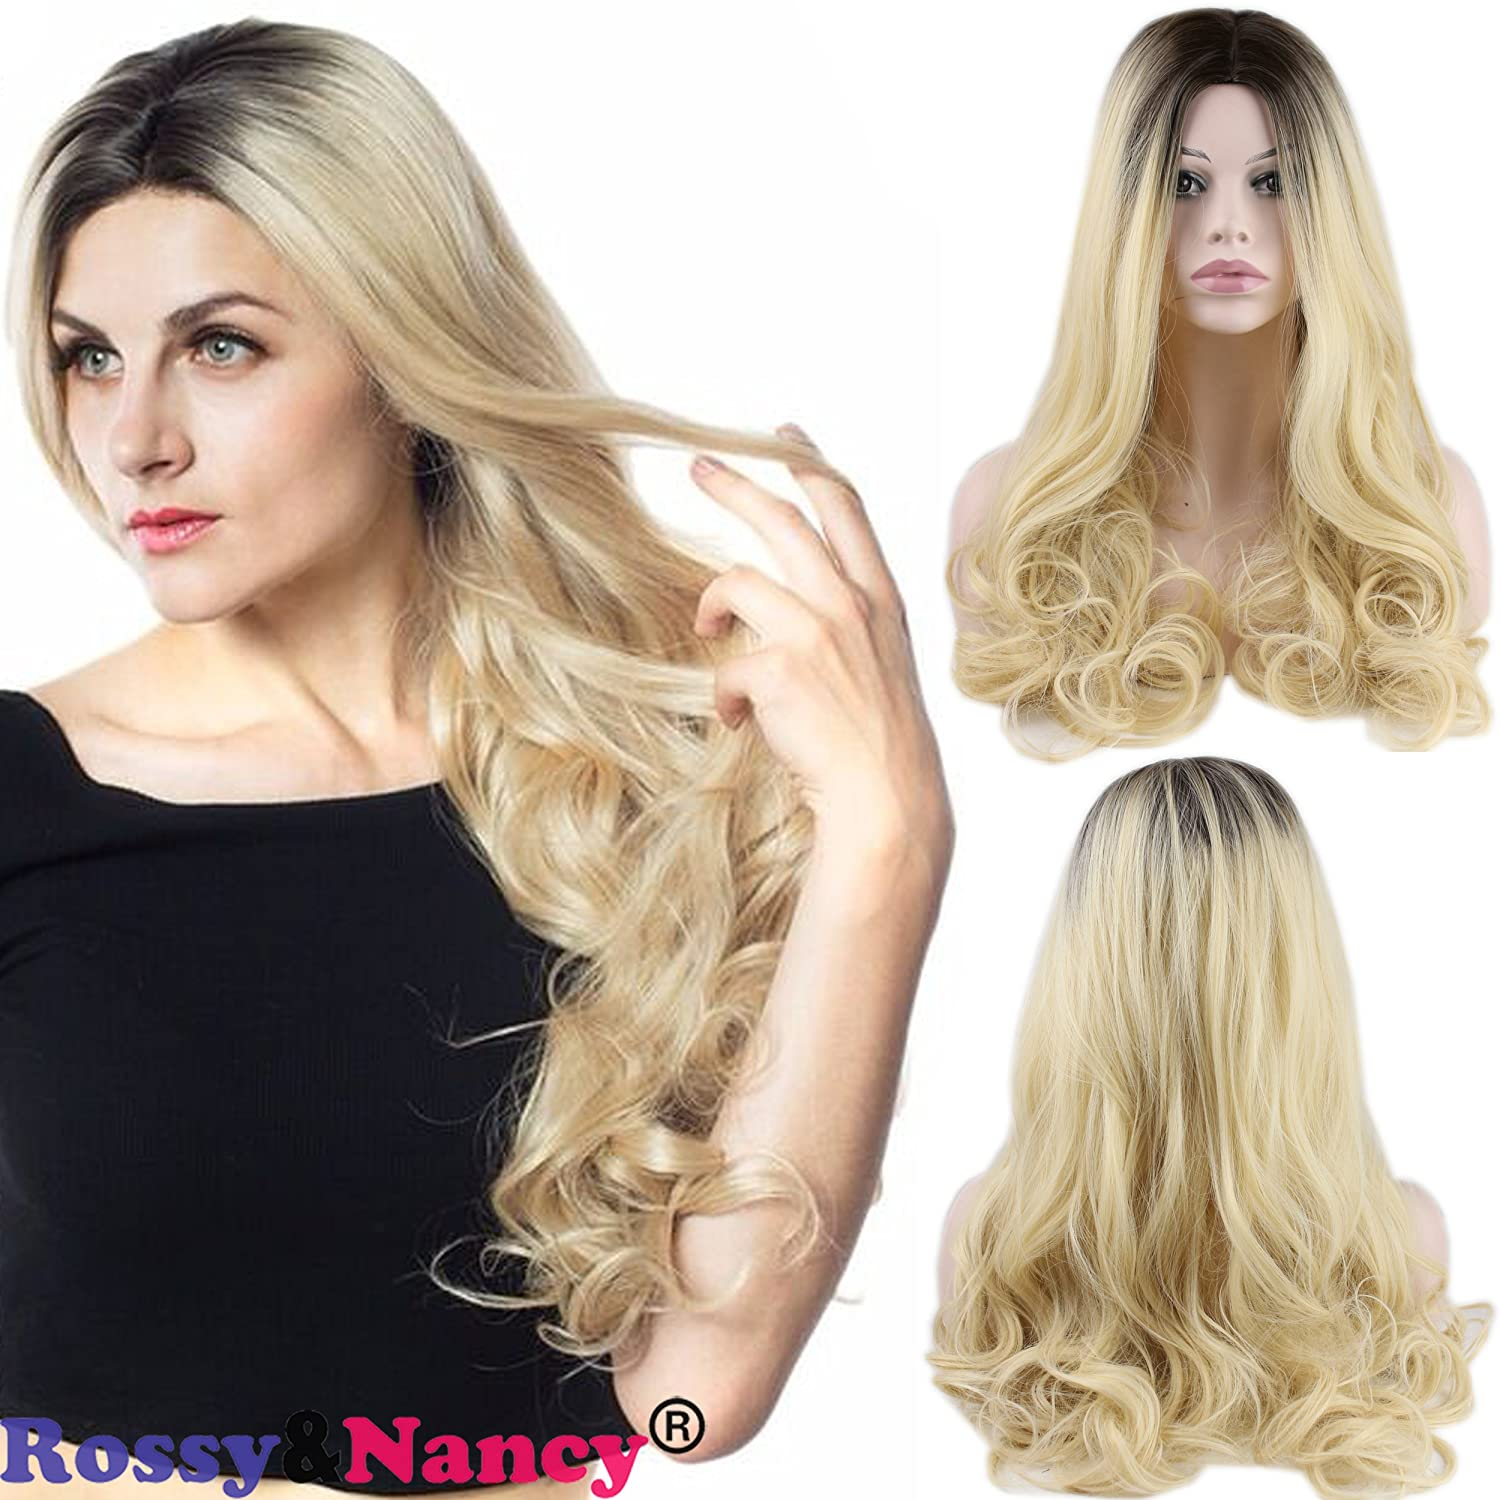 Amazon Rossynancy Long Wavy Curly Black Roots To 613 Blonde